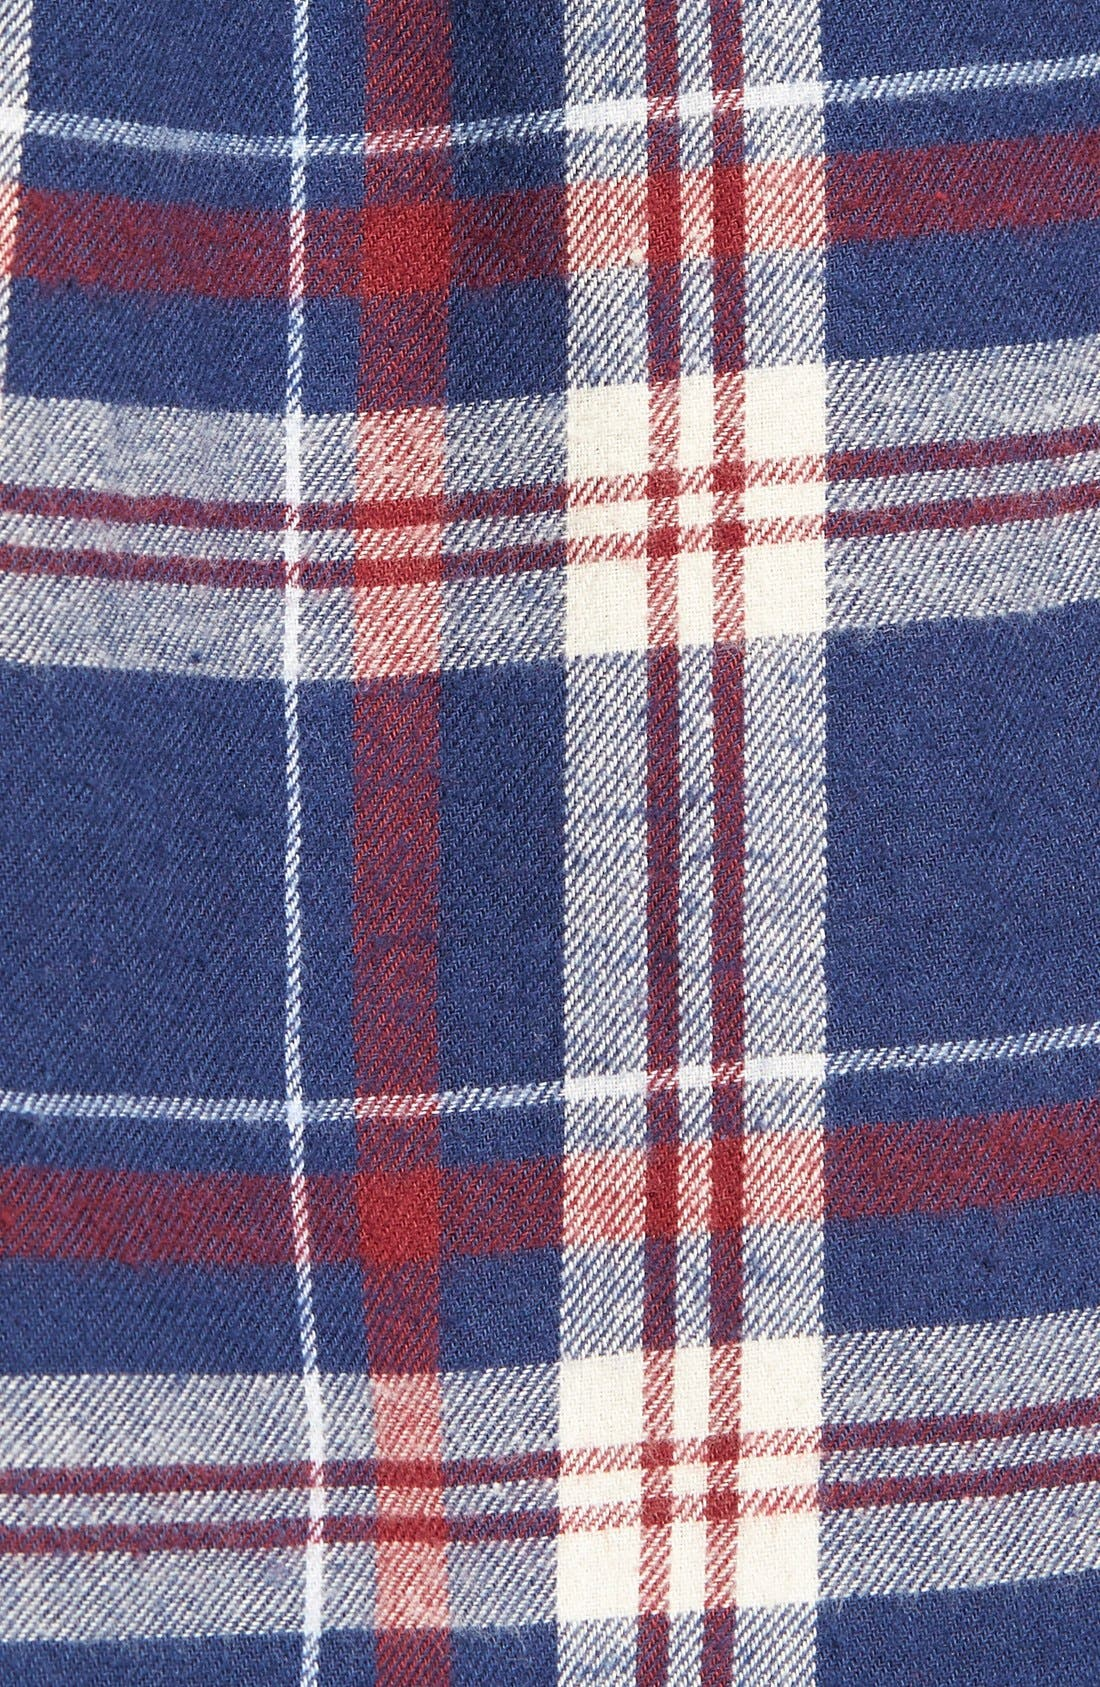 Plaid Cotton Western Shirt,                             Alternate thumbnail 3, color,                             404